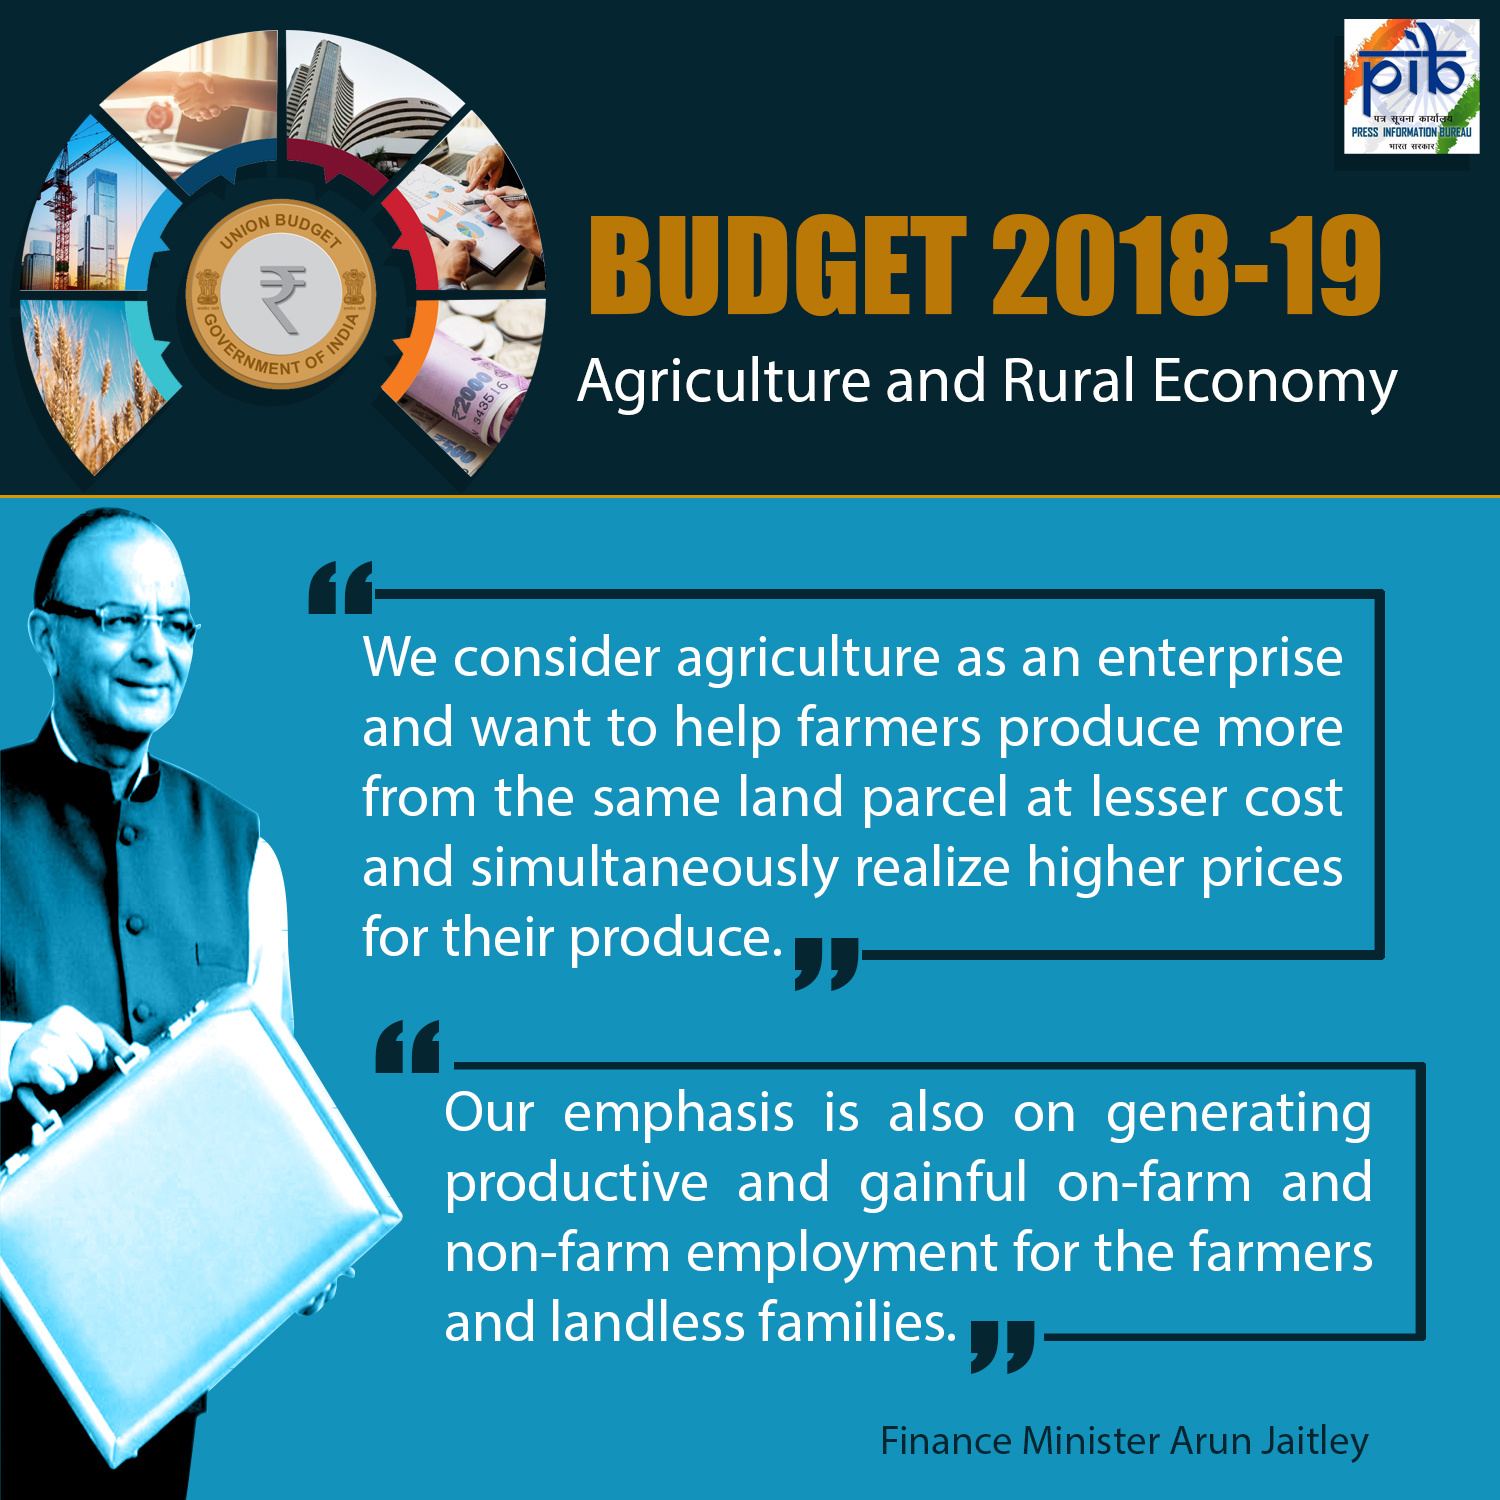 Agriculture in Budget 2018